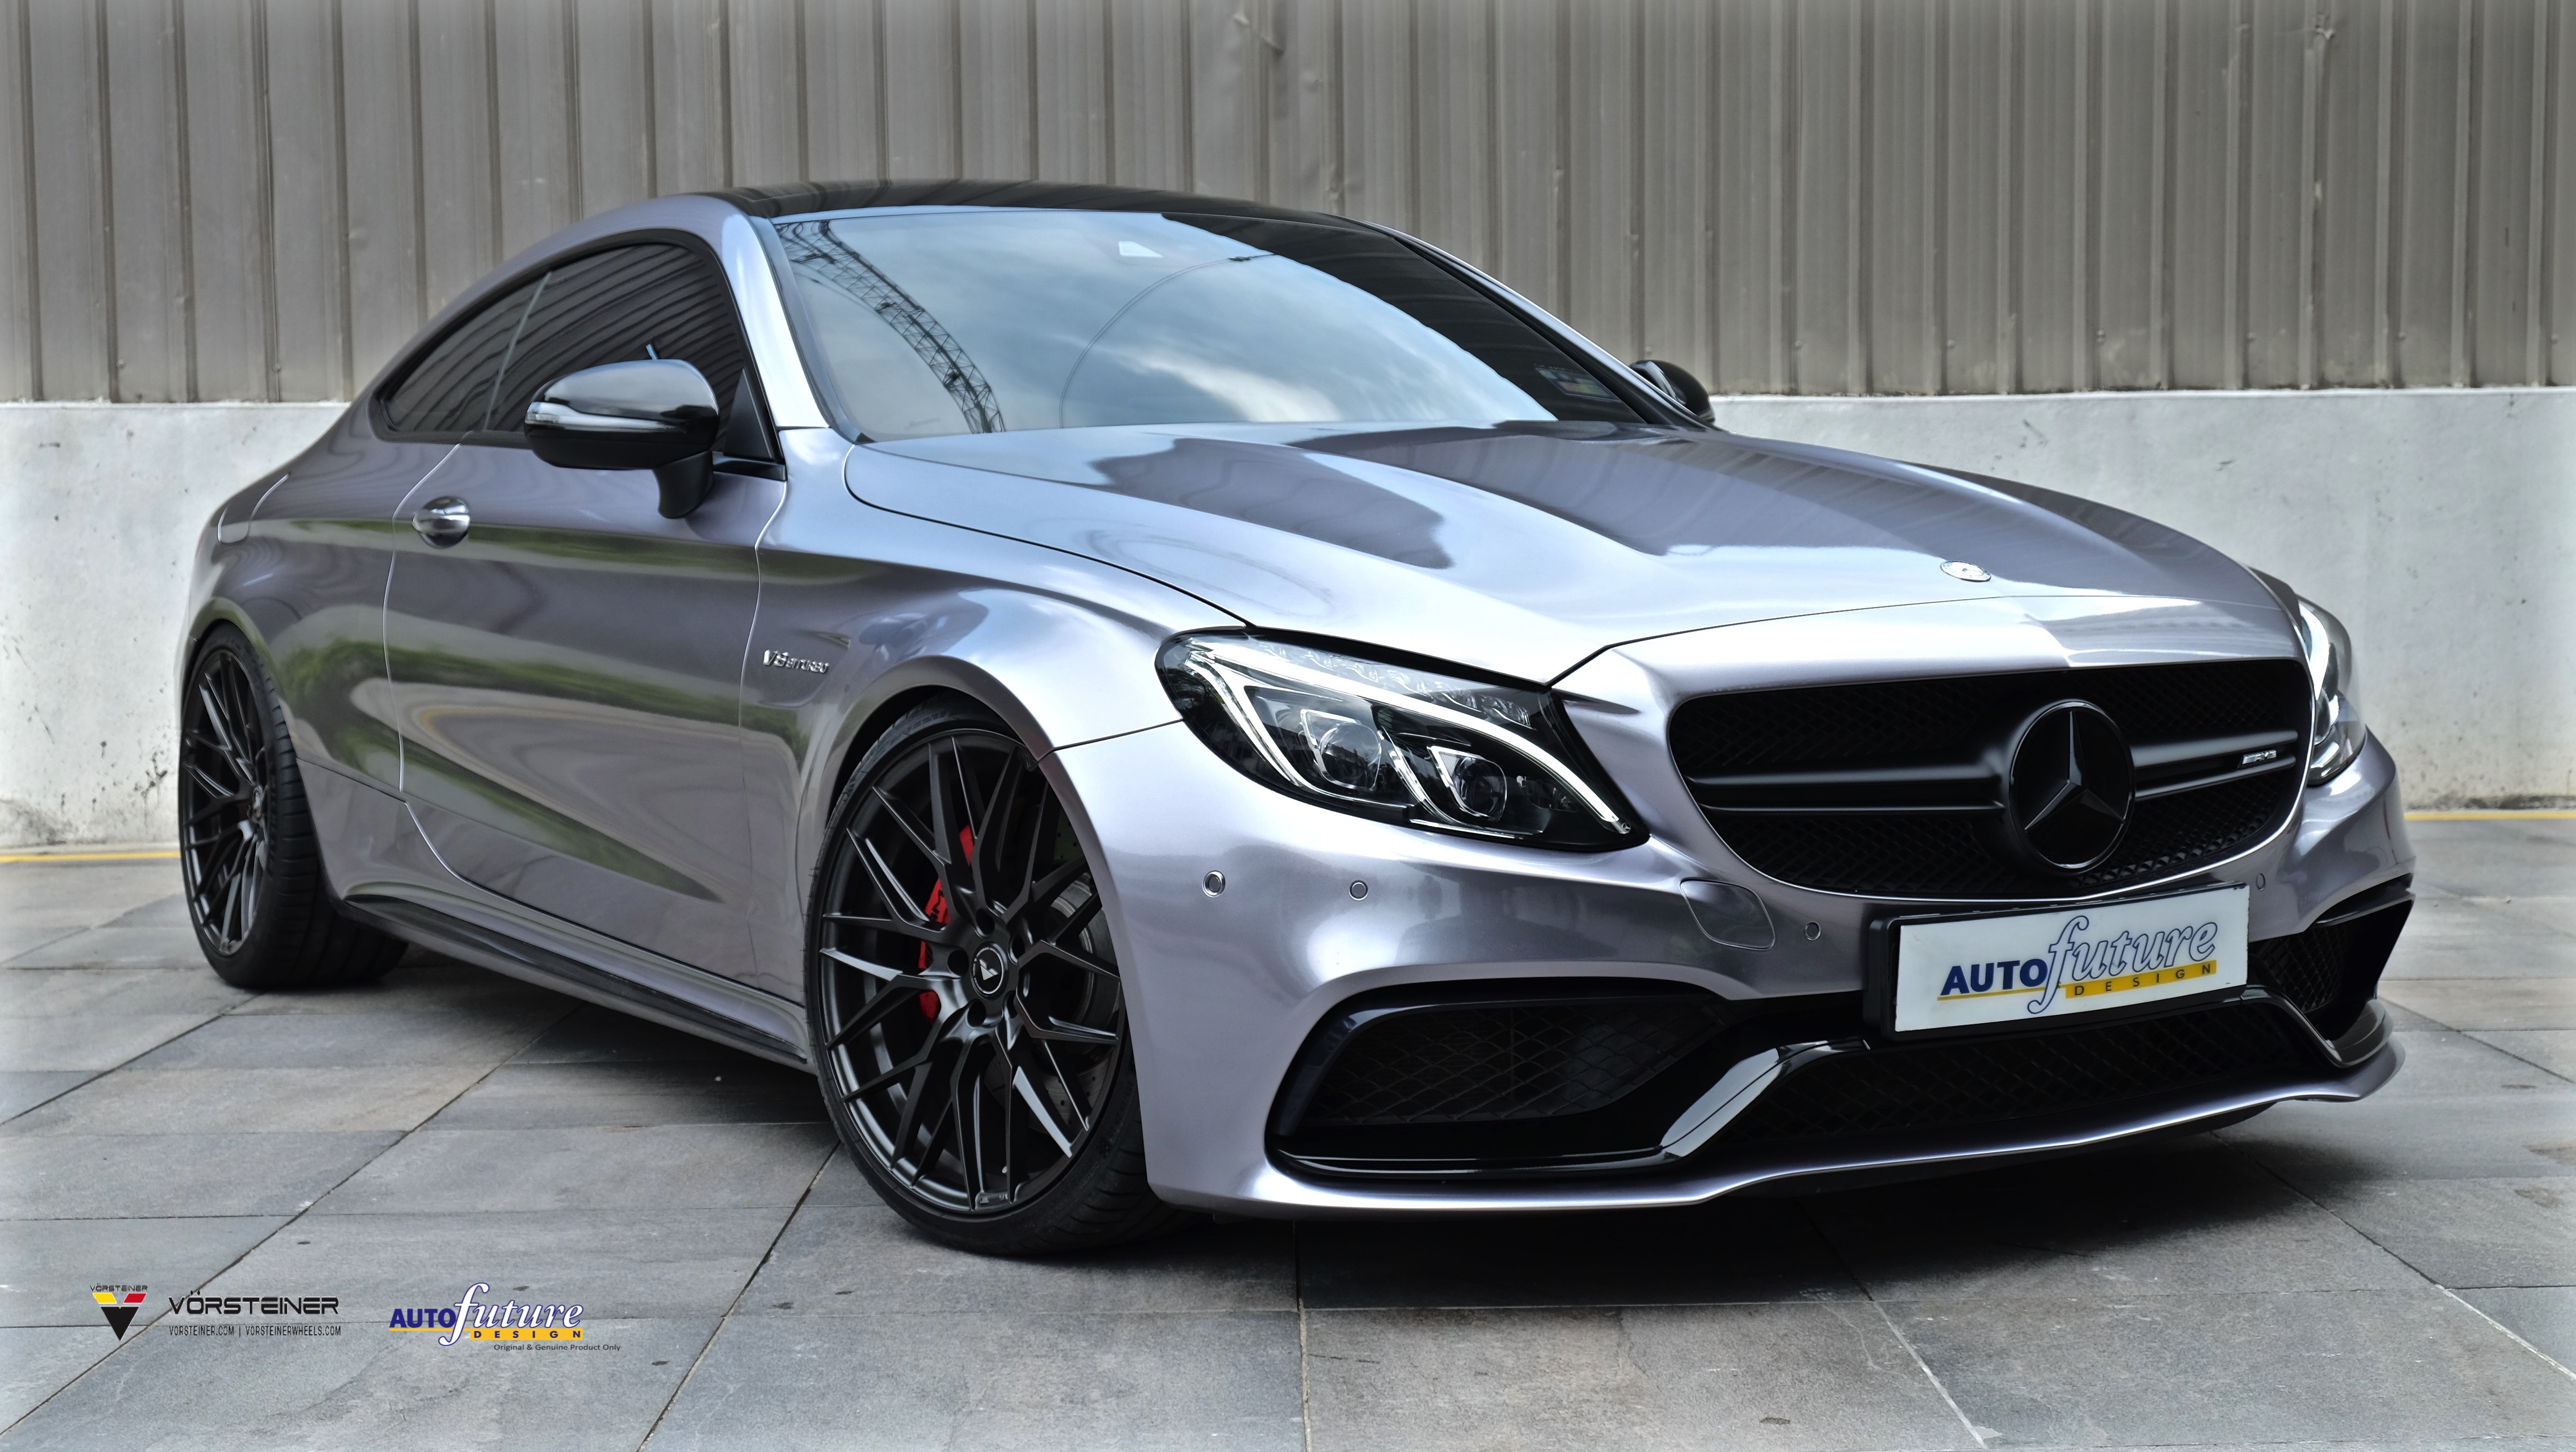 Michelin Pilot Sport >> Mercedes-AMG C63S Coupe On A Set Of Vorsteiner V-FF 107 Wheels! | Autofuture Design SDN BHD